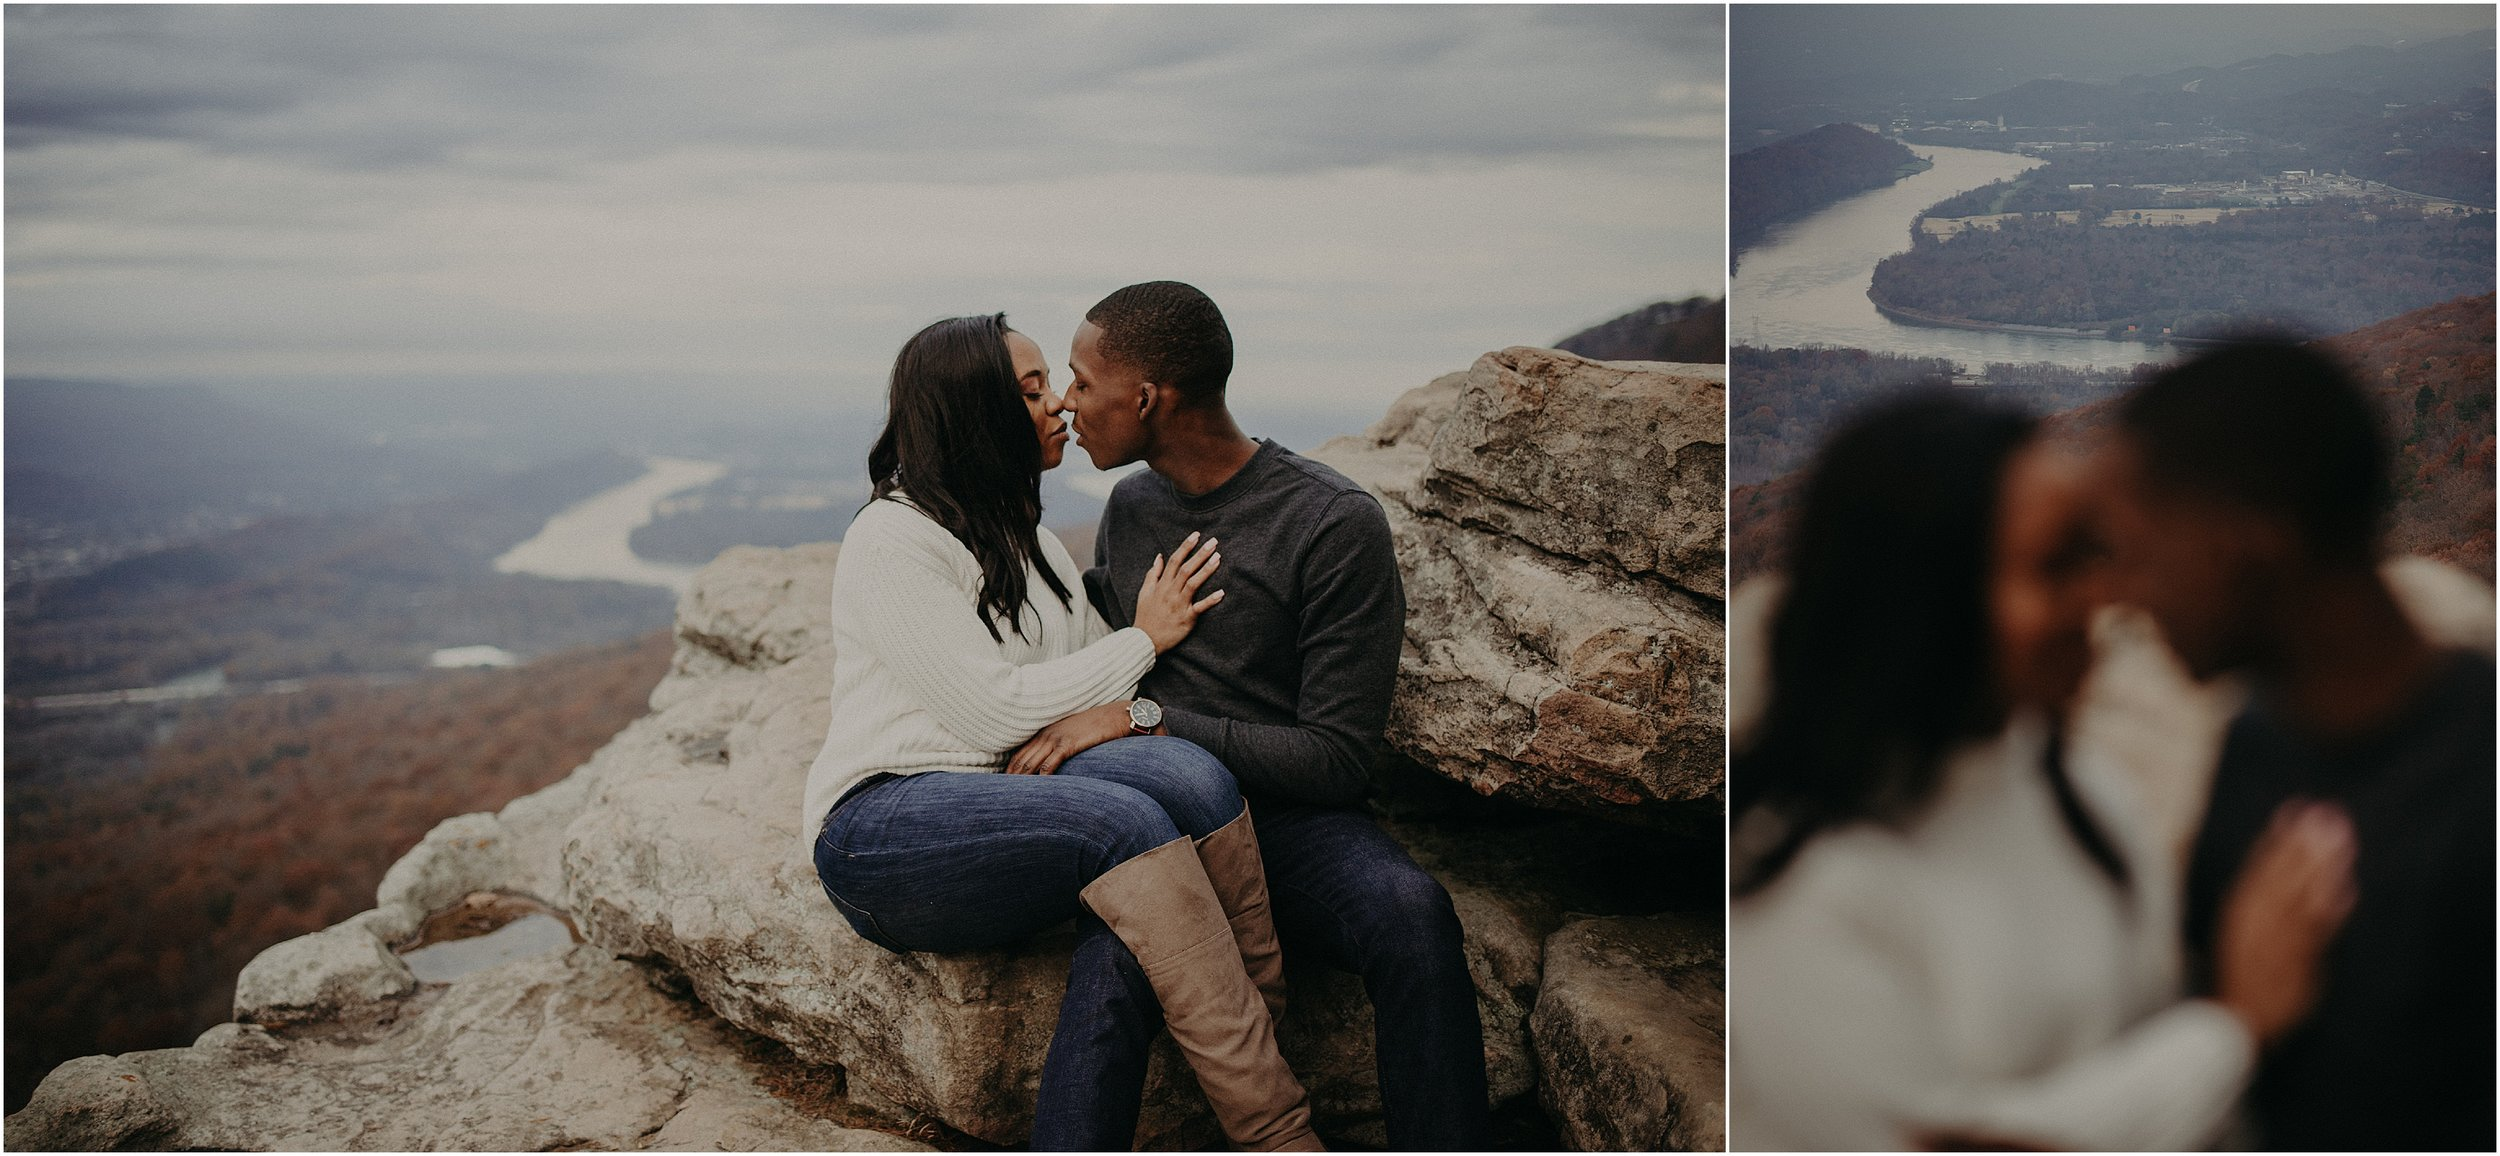 An engagement session atop Sunset Rock with the Tennessee River in the background